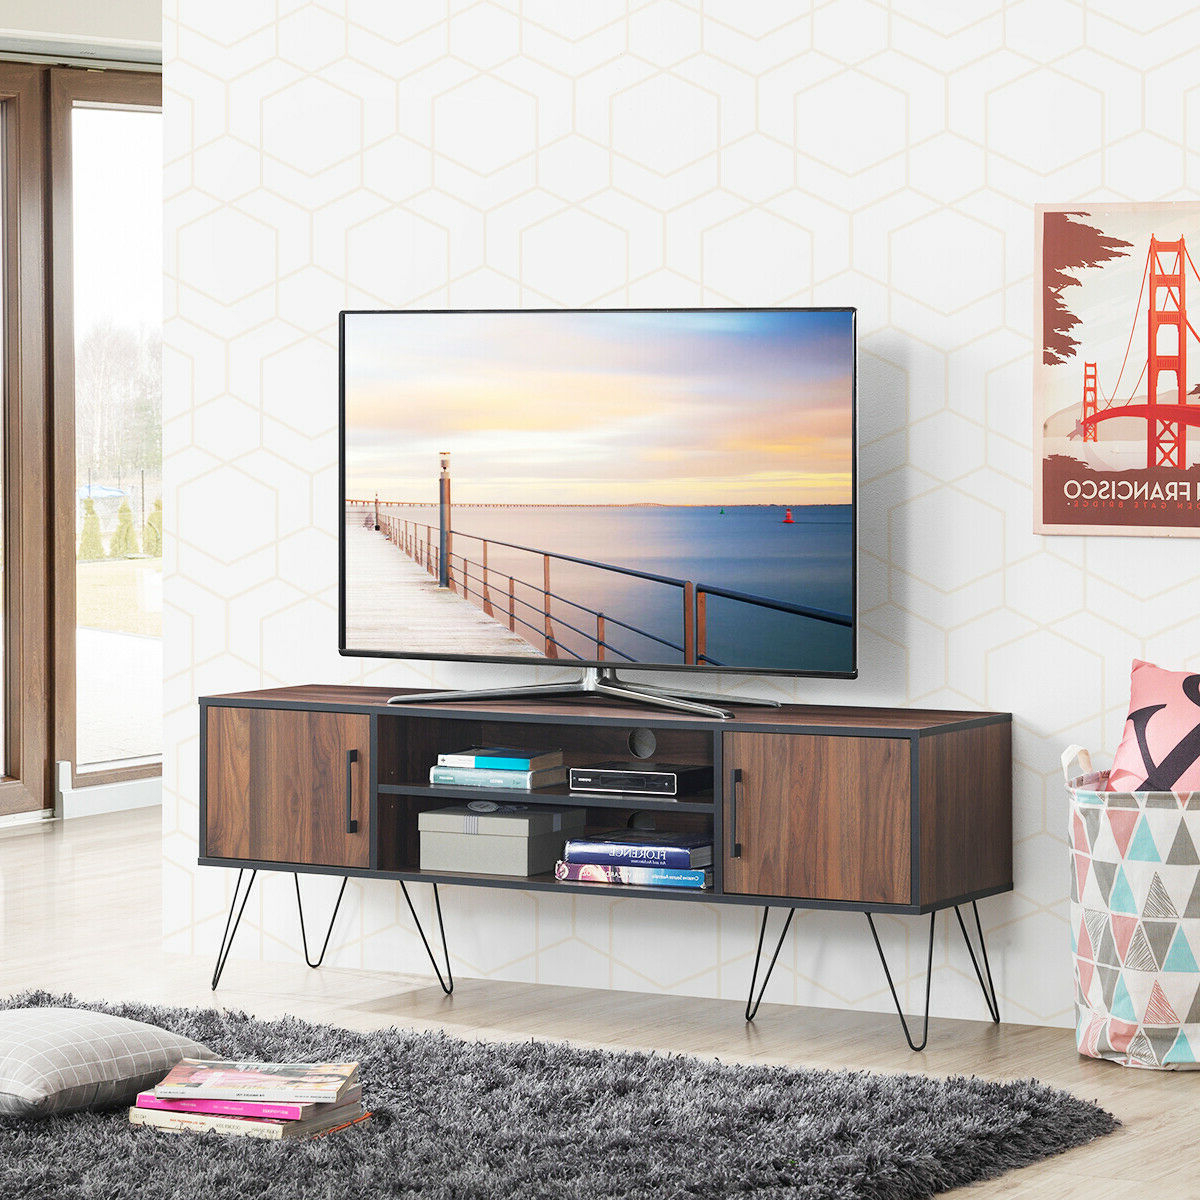 """Lorraine Tv Stands For Tvs Up To 60"""" Regarding 2017 Gymax Tv Stand Media Center Storage Cabinet & Shelf Hold (View 24 of 25)"""